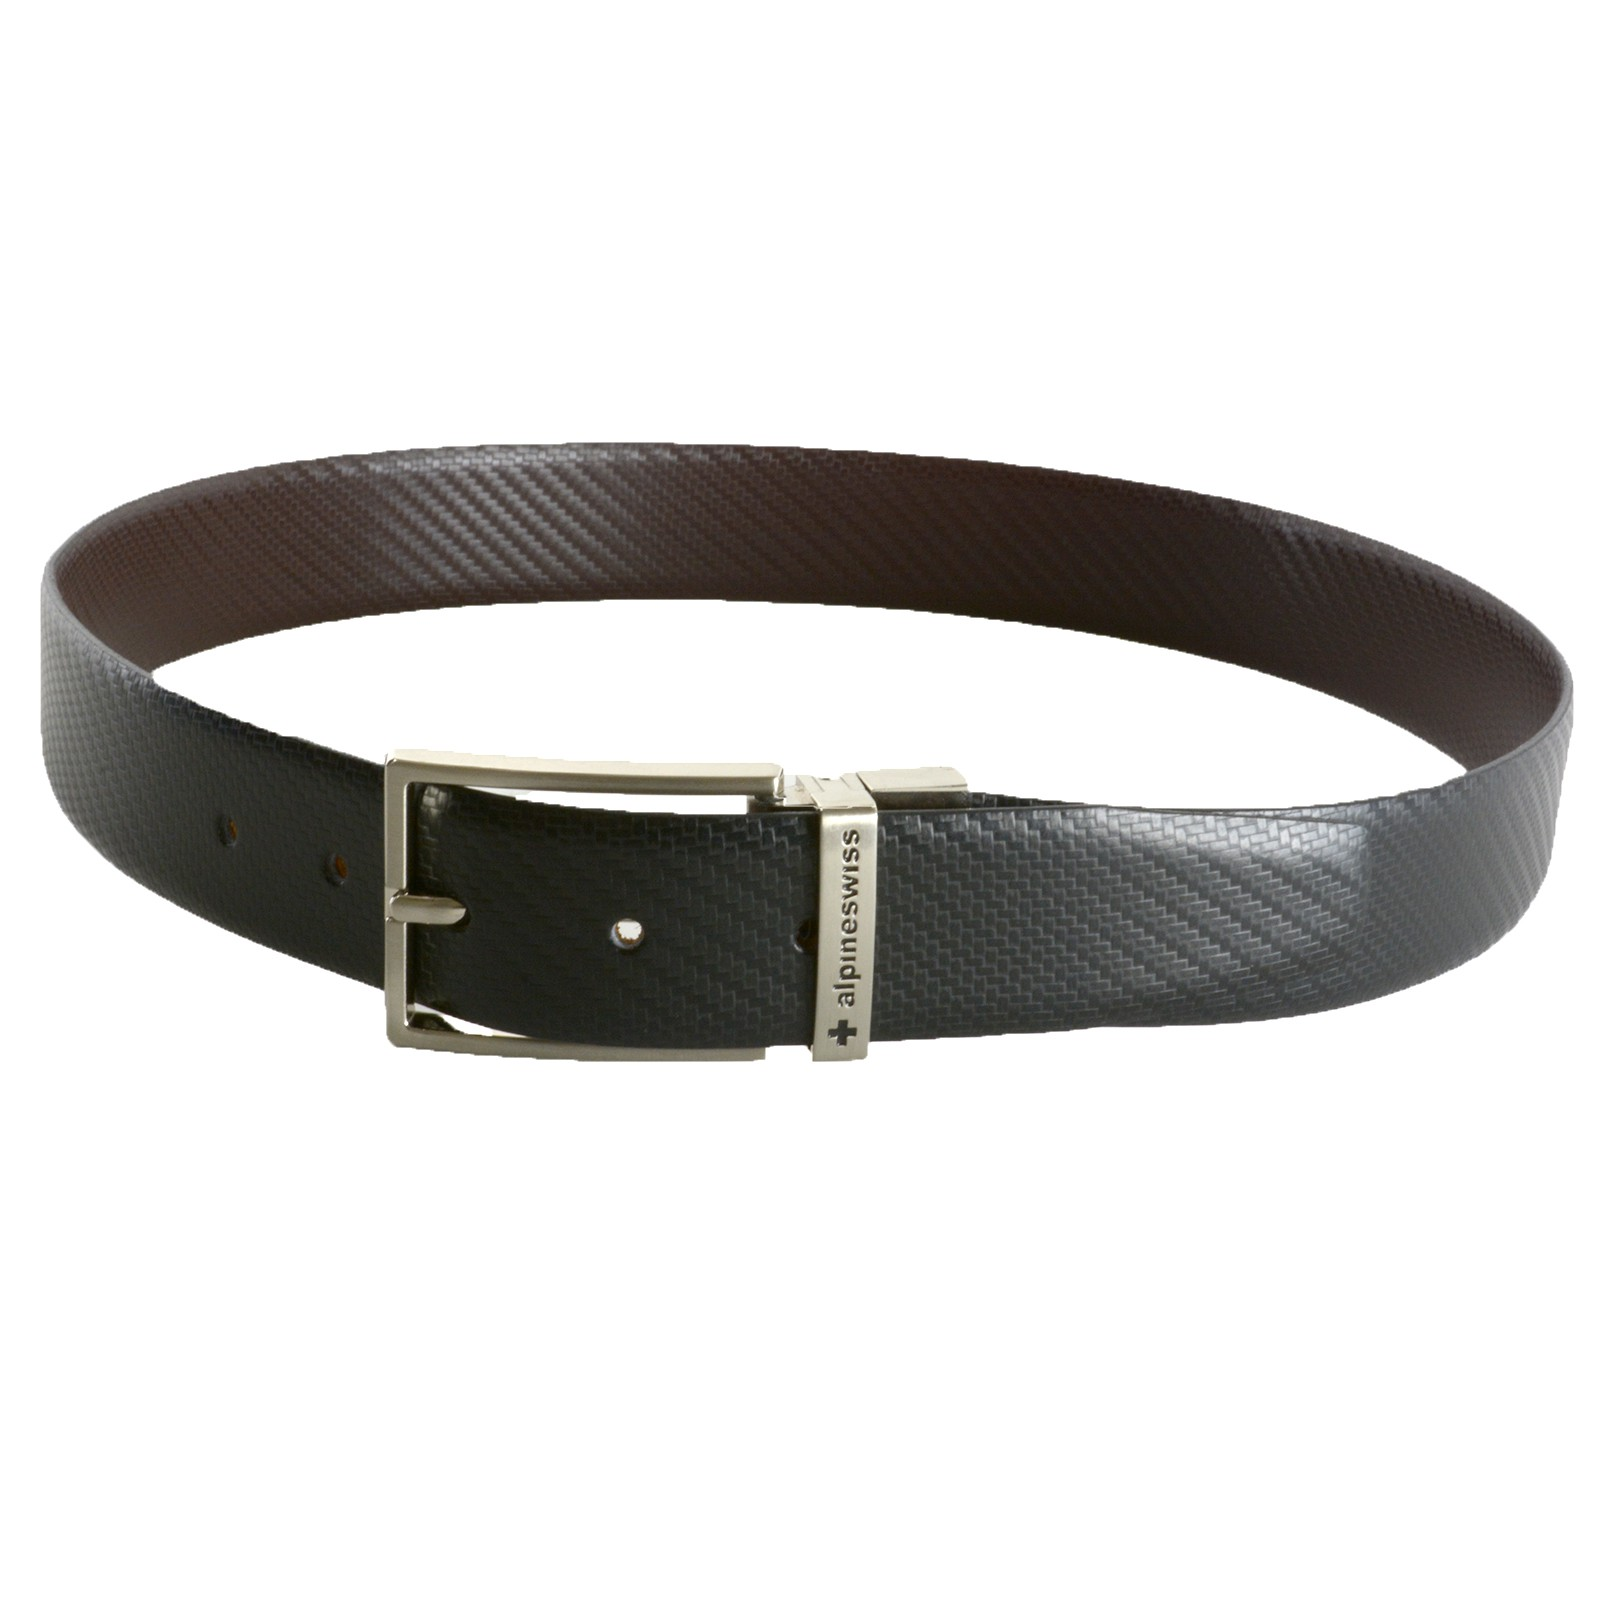 Alpine-Swiss-Men-039-s-Dress-Belt-Reversible-Black-Brown-Leather-Imported-from-Spain